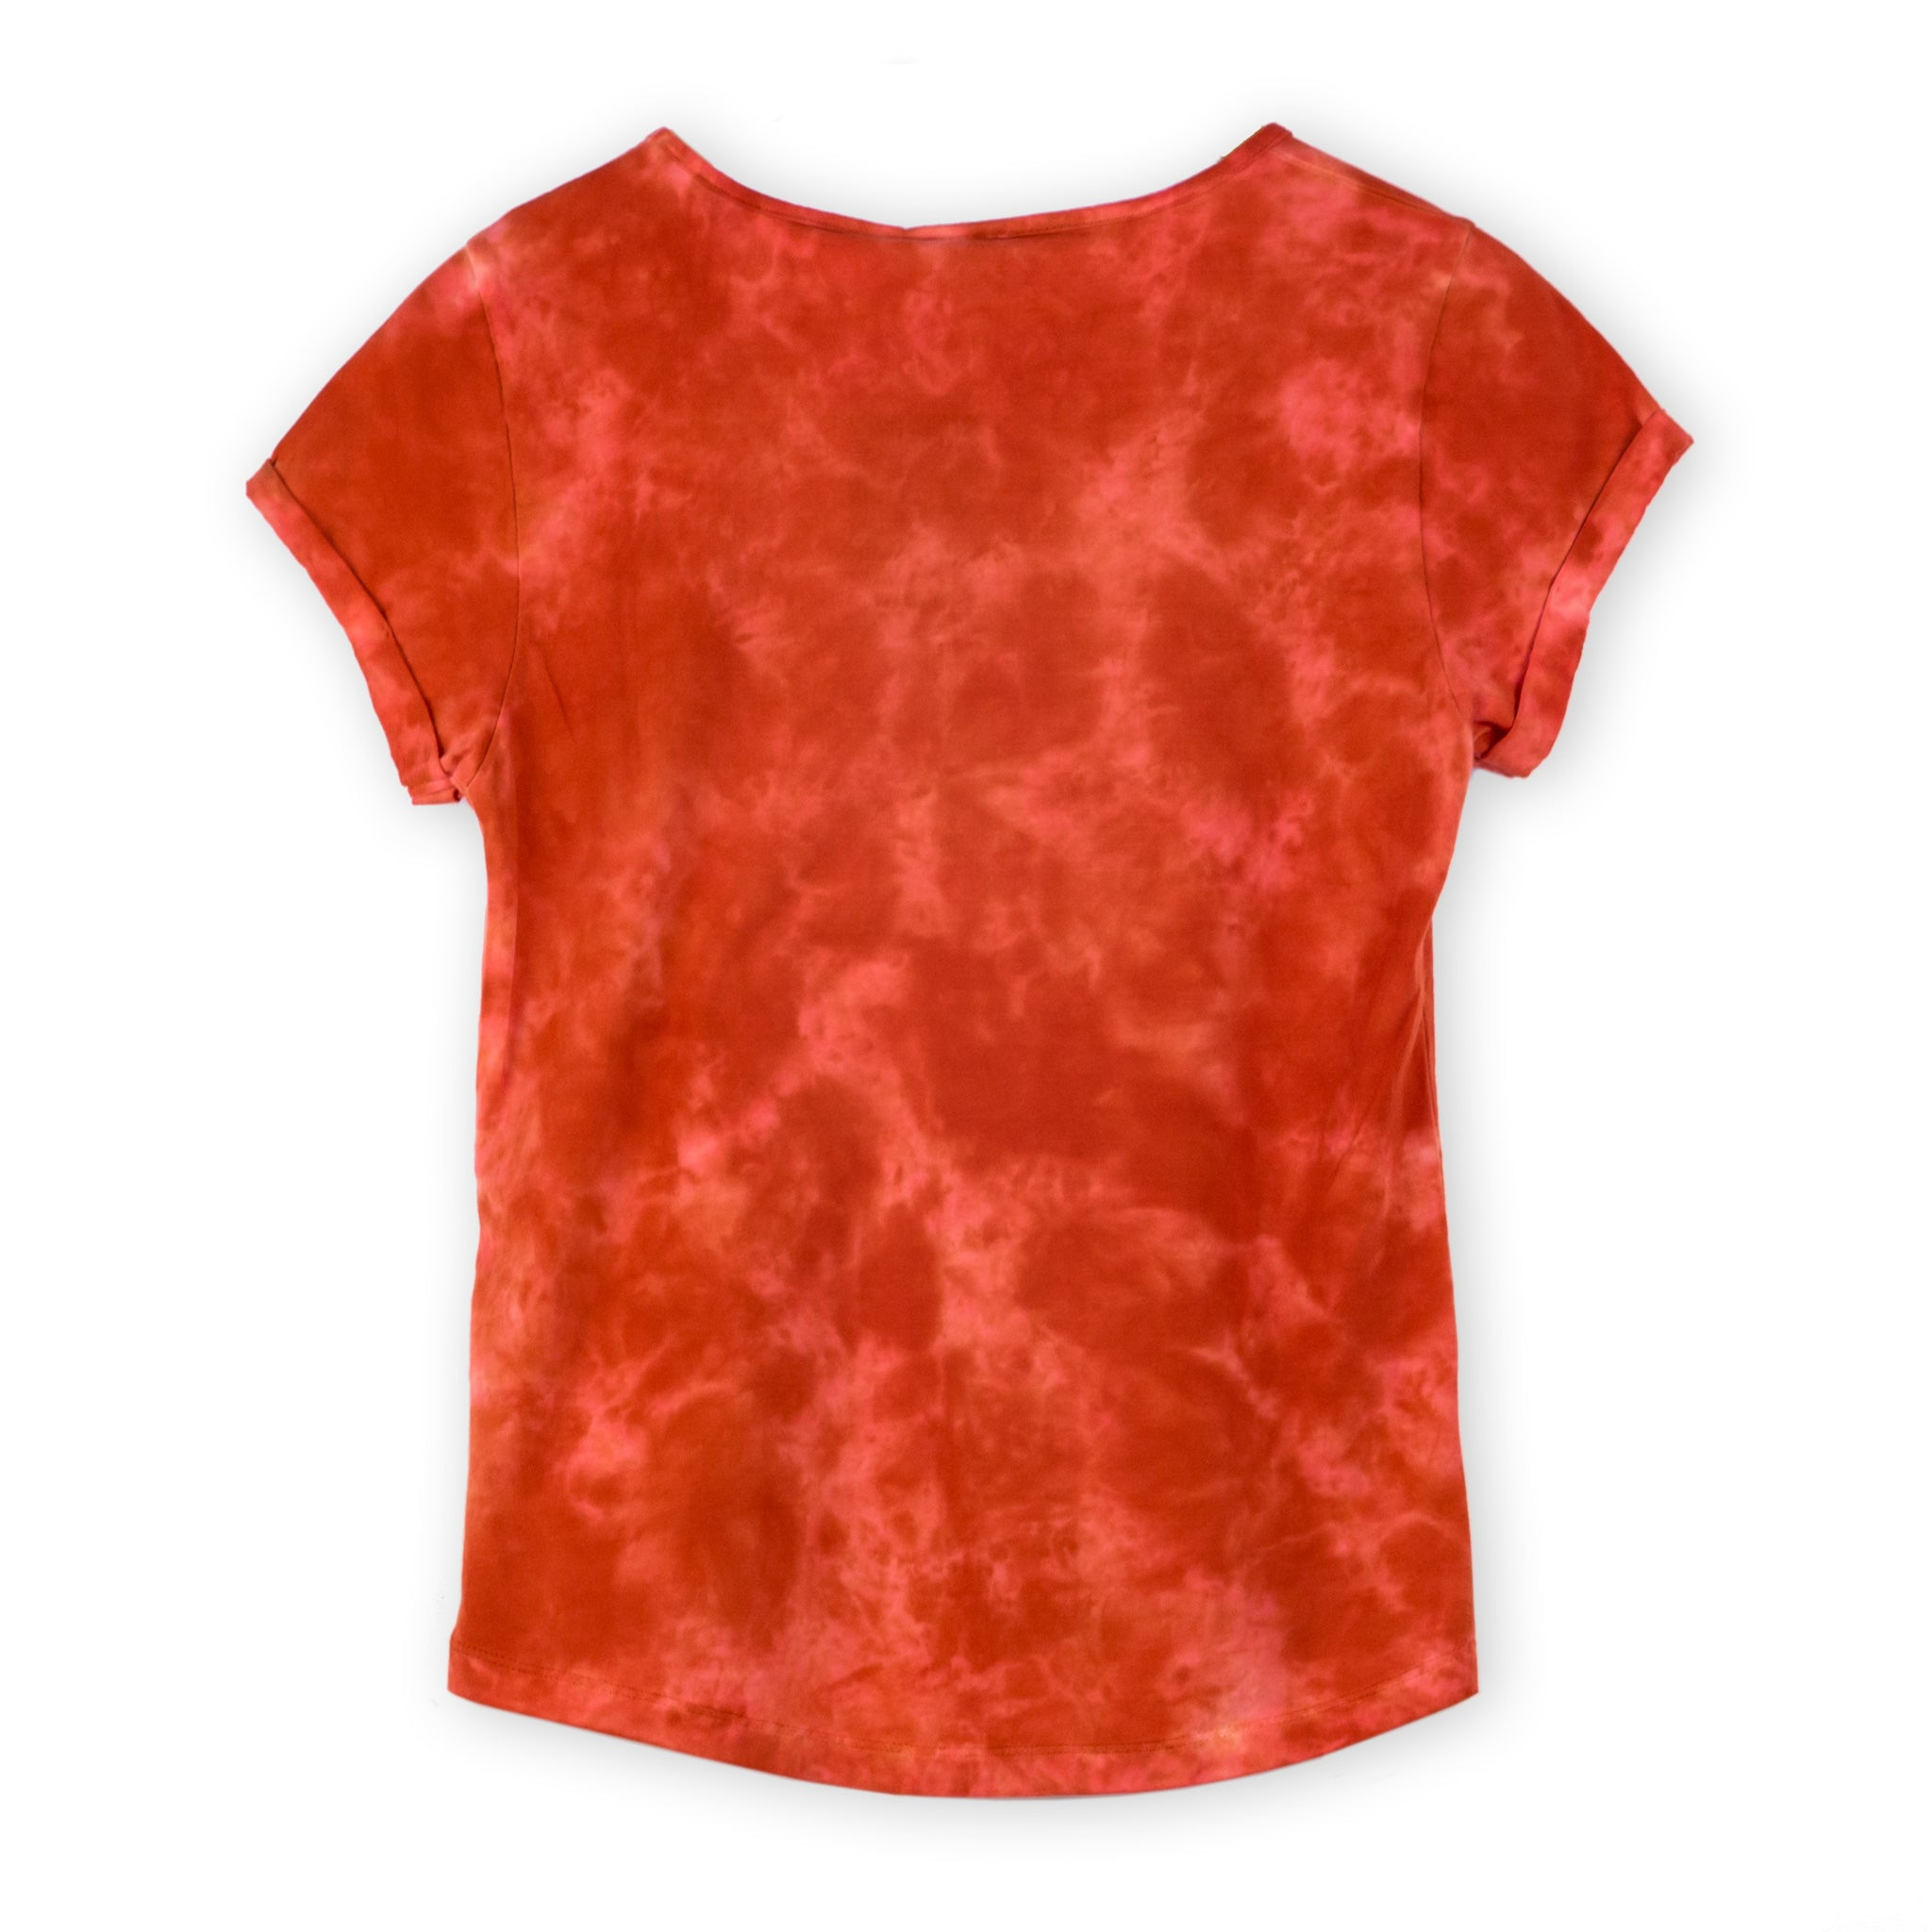 Widetop tie-dye red